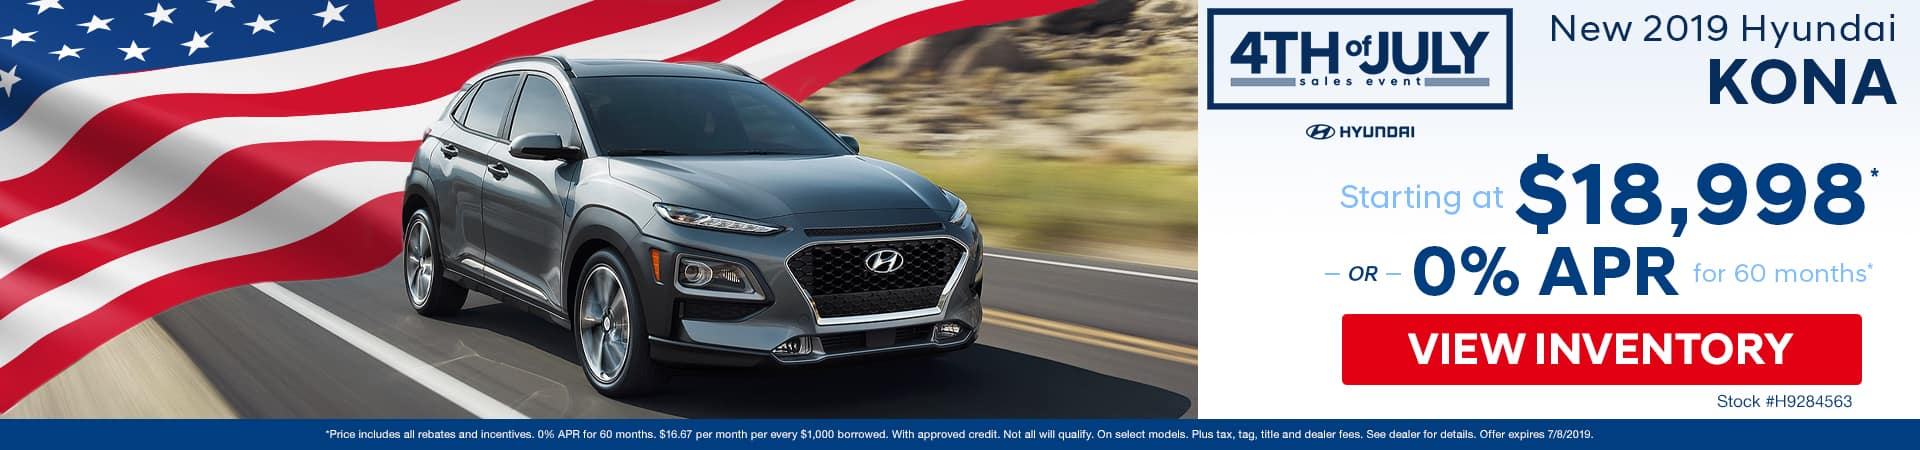 Get a new 2019 Hyundai Kona for just $18,998 or 0% APR in Murfreesboro TN